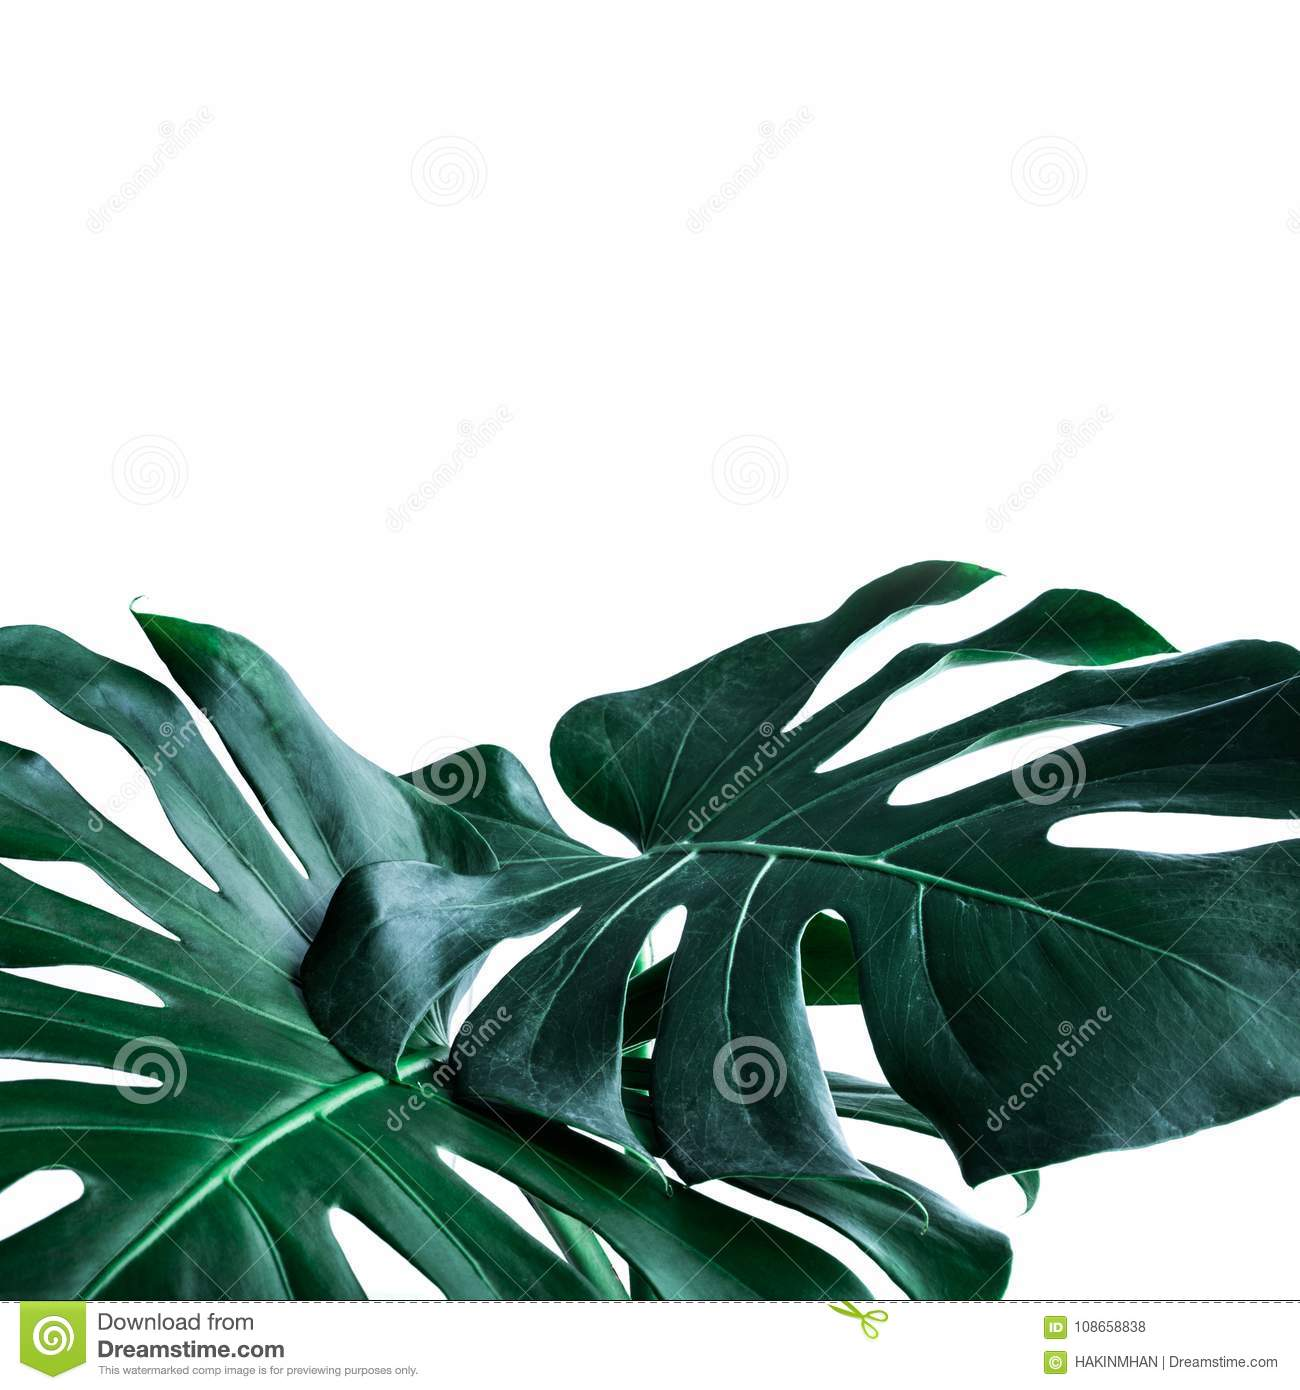 Real monstera leaves decorating for composition design.Tropical,botanical nature concepts